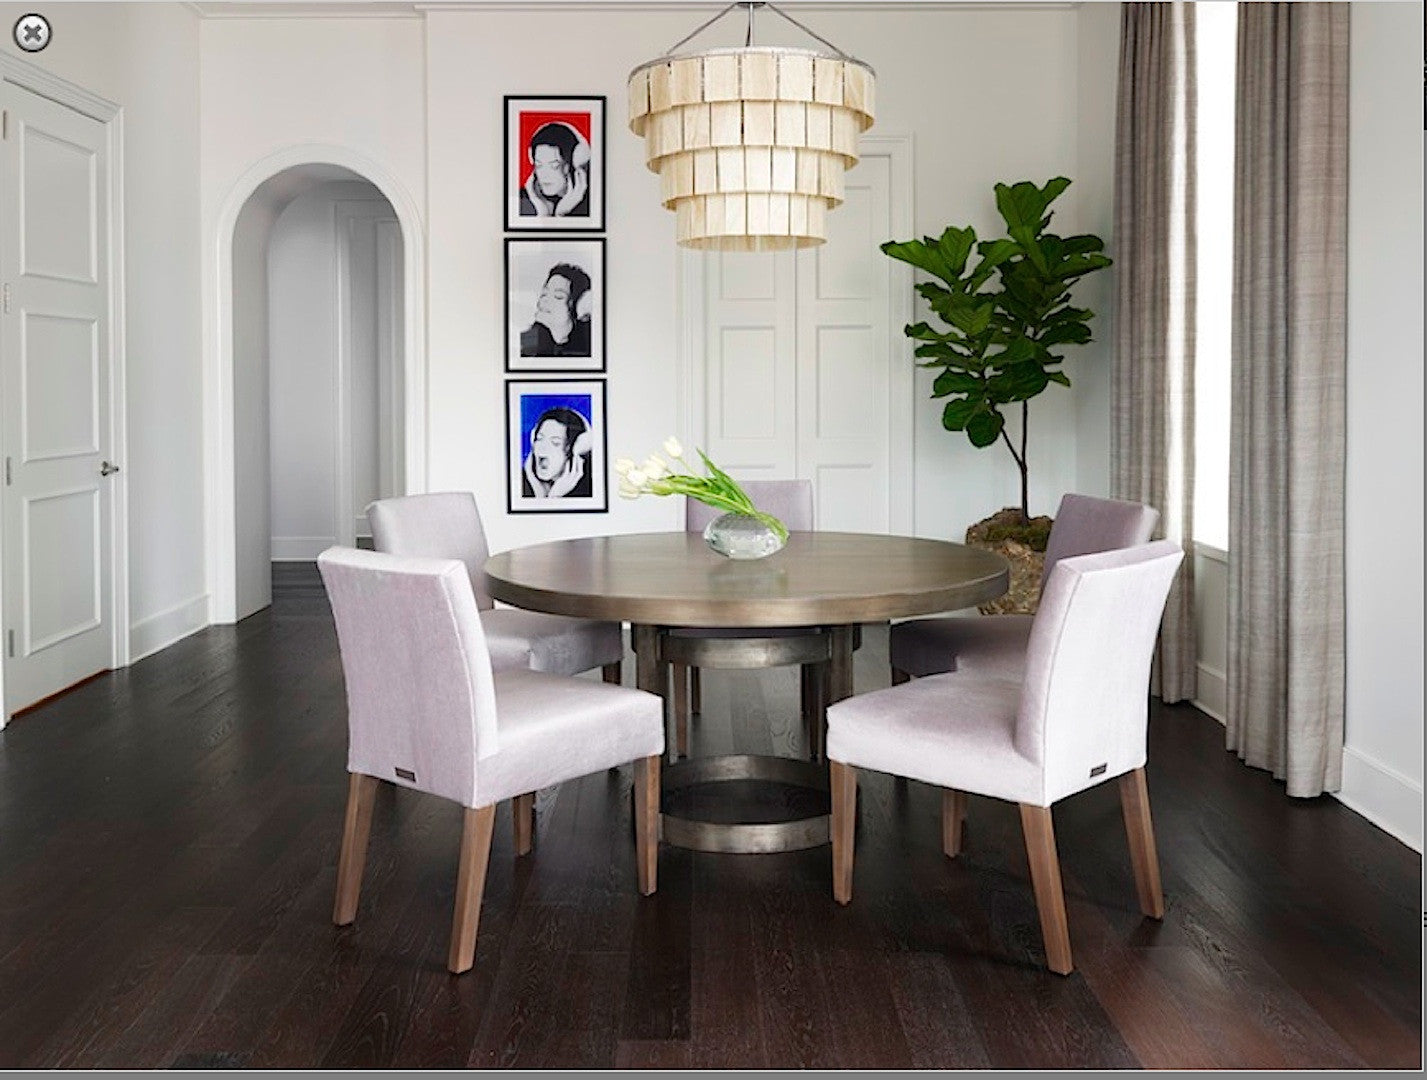 modern round dining room table. Industrial Modern Round Dining Table With Upholstered Chairs Room Vignettes  Mortise Tenon